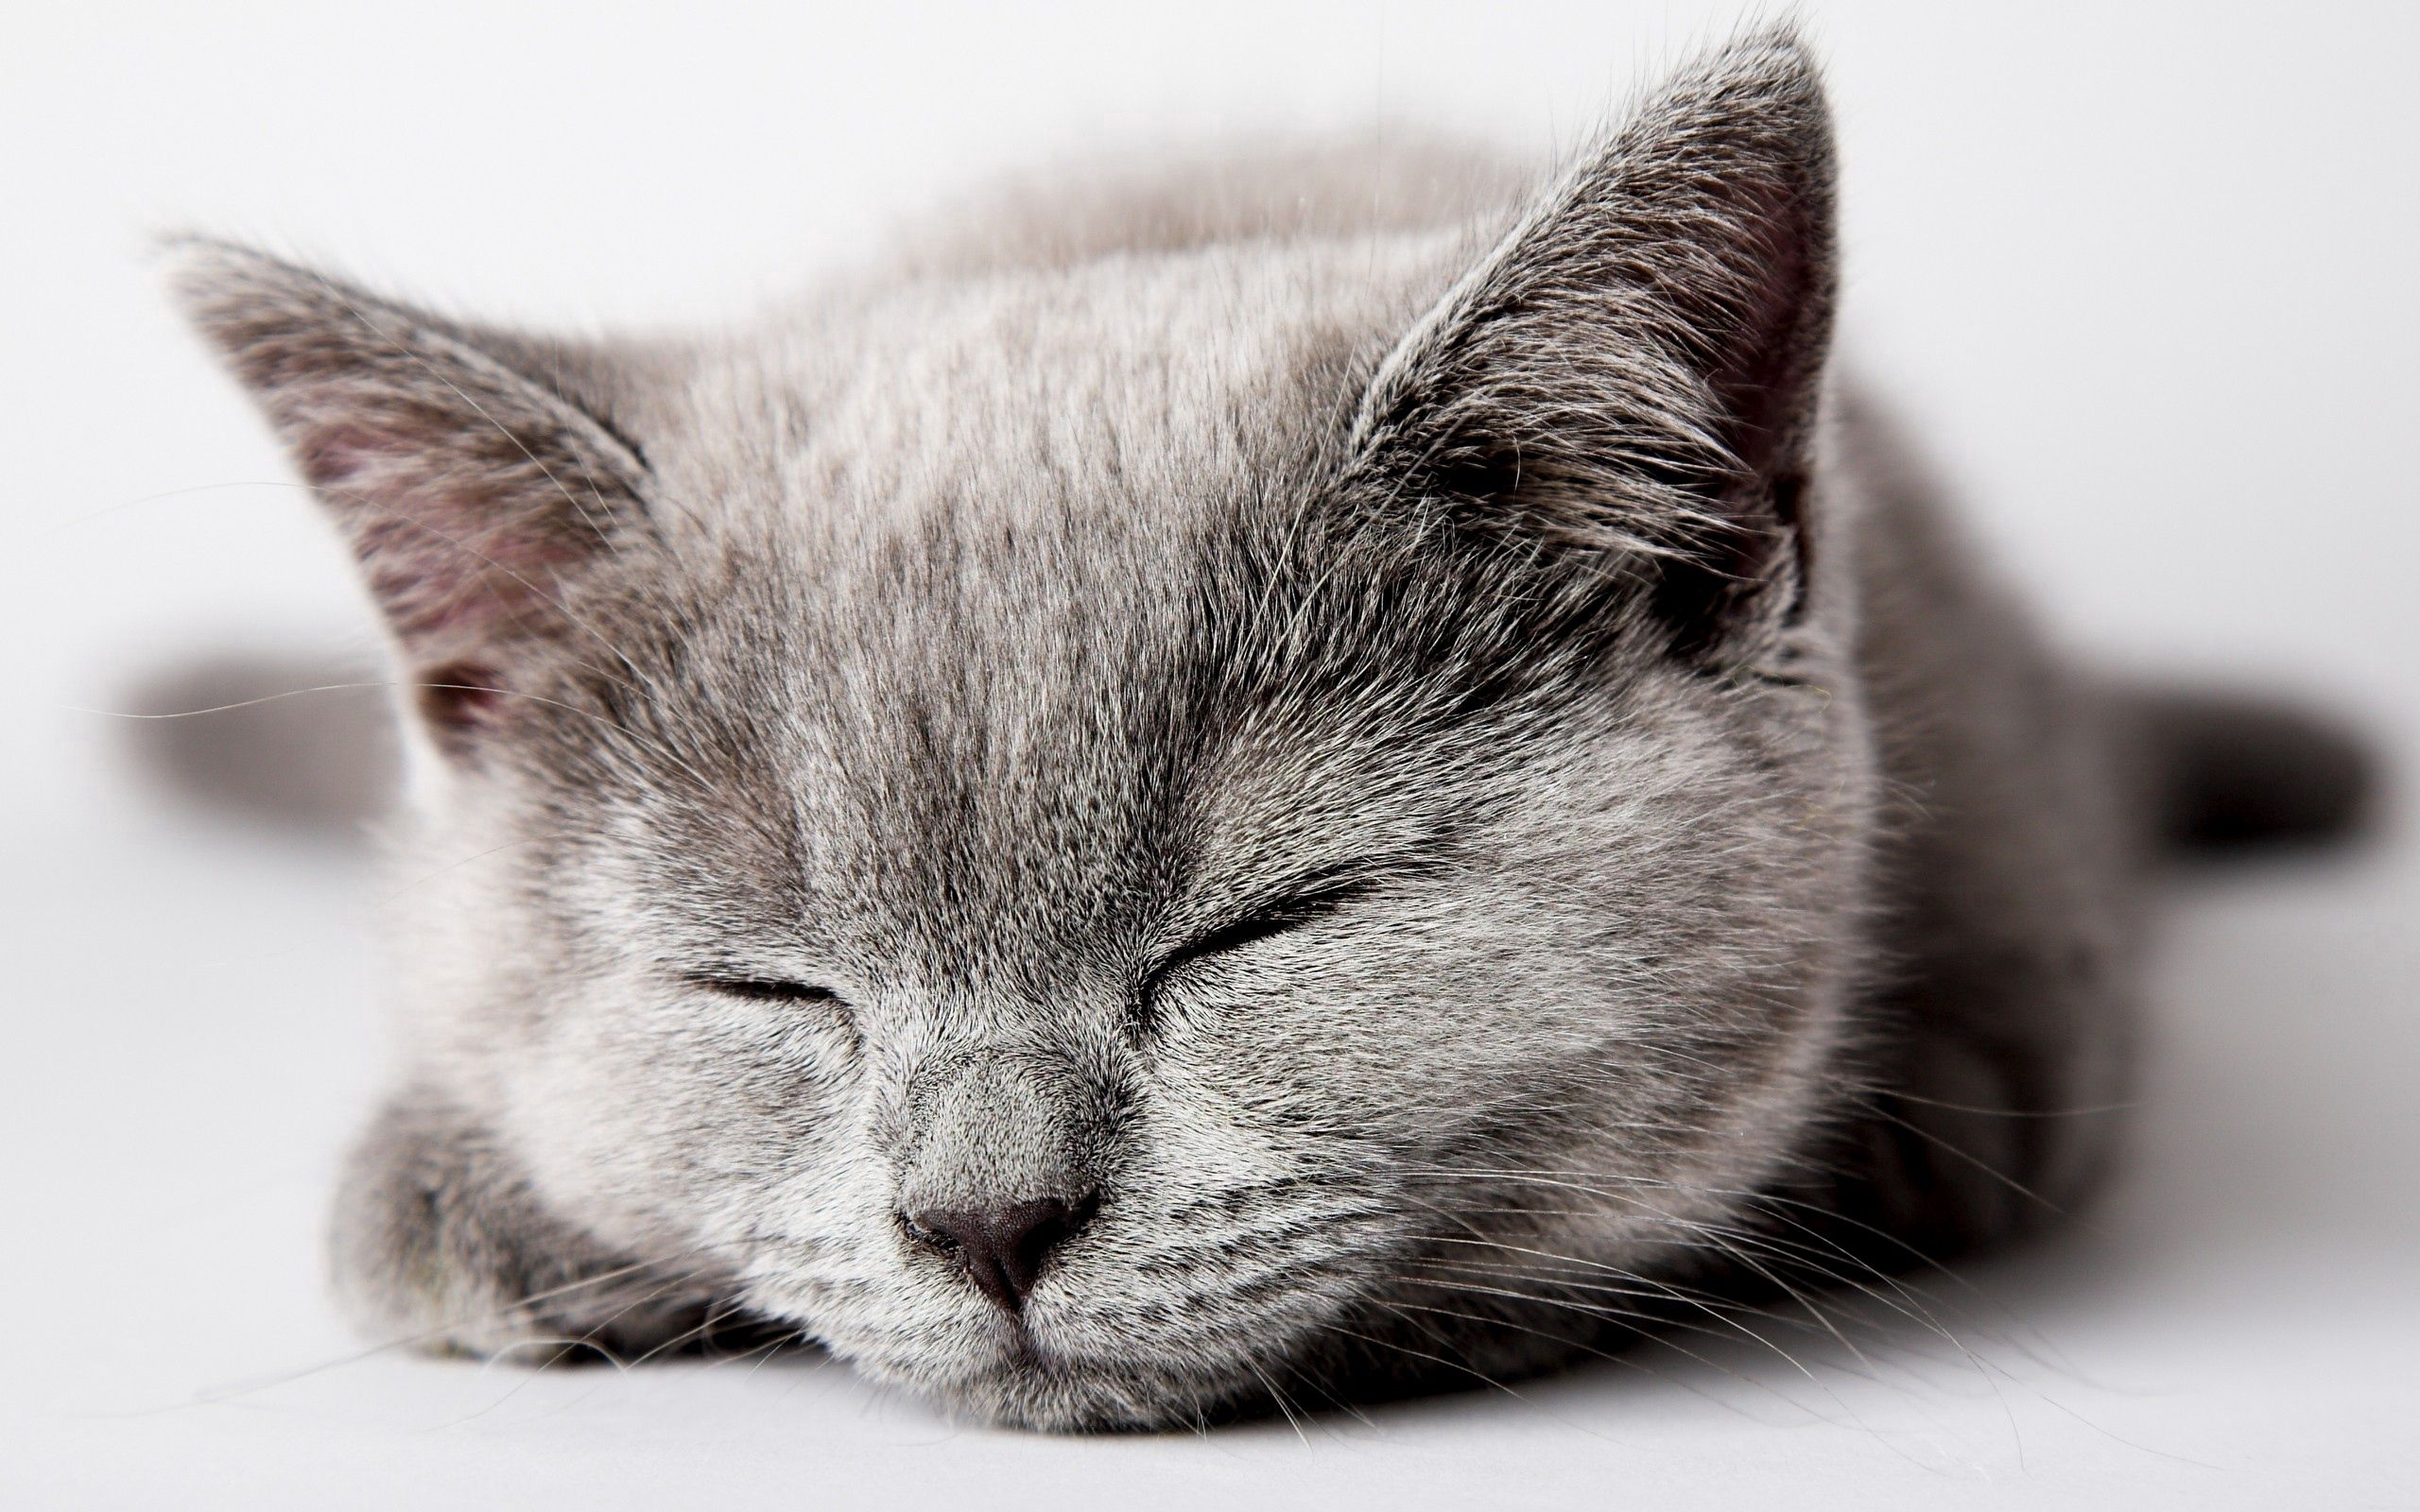 108058 download wallpaper Animals, Kitty, Kitten, Sleep, Dream, Muzzle, Nice, Sweetheart, Kid, Tot screensavers and pictures for free